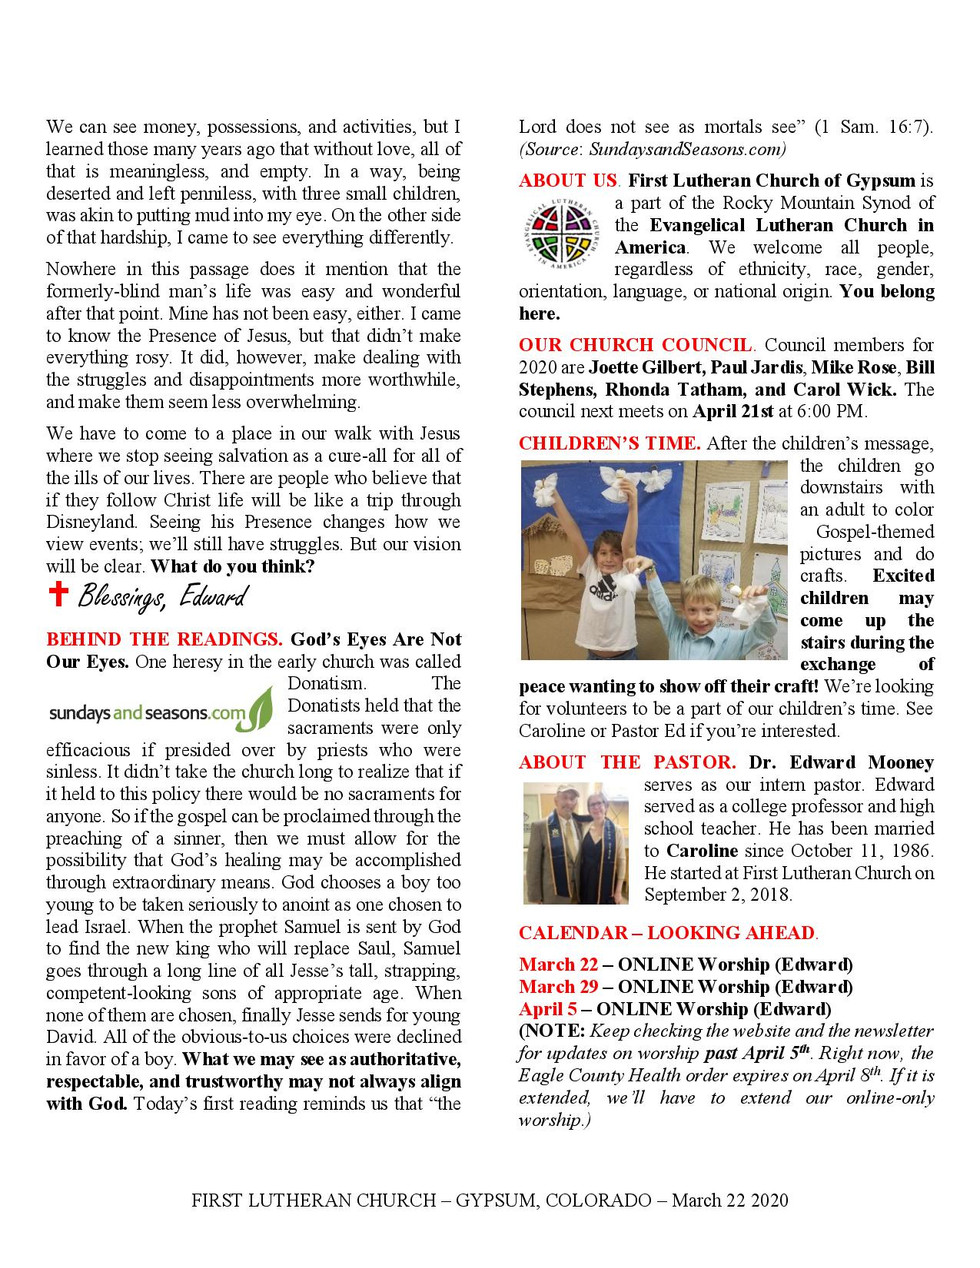 Newsletter, March 22, 2020, page 2